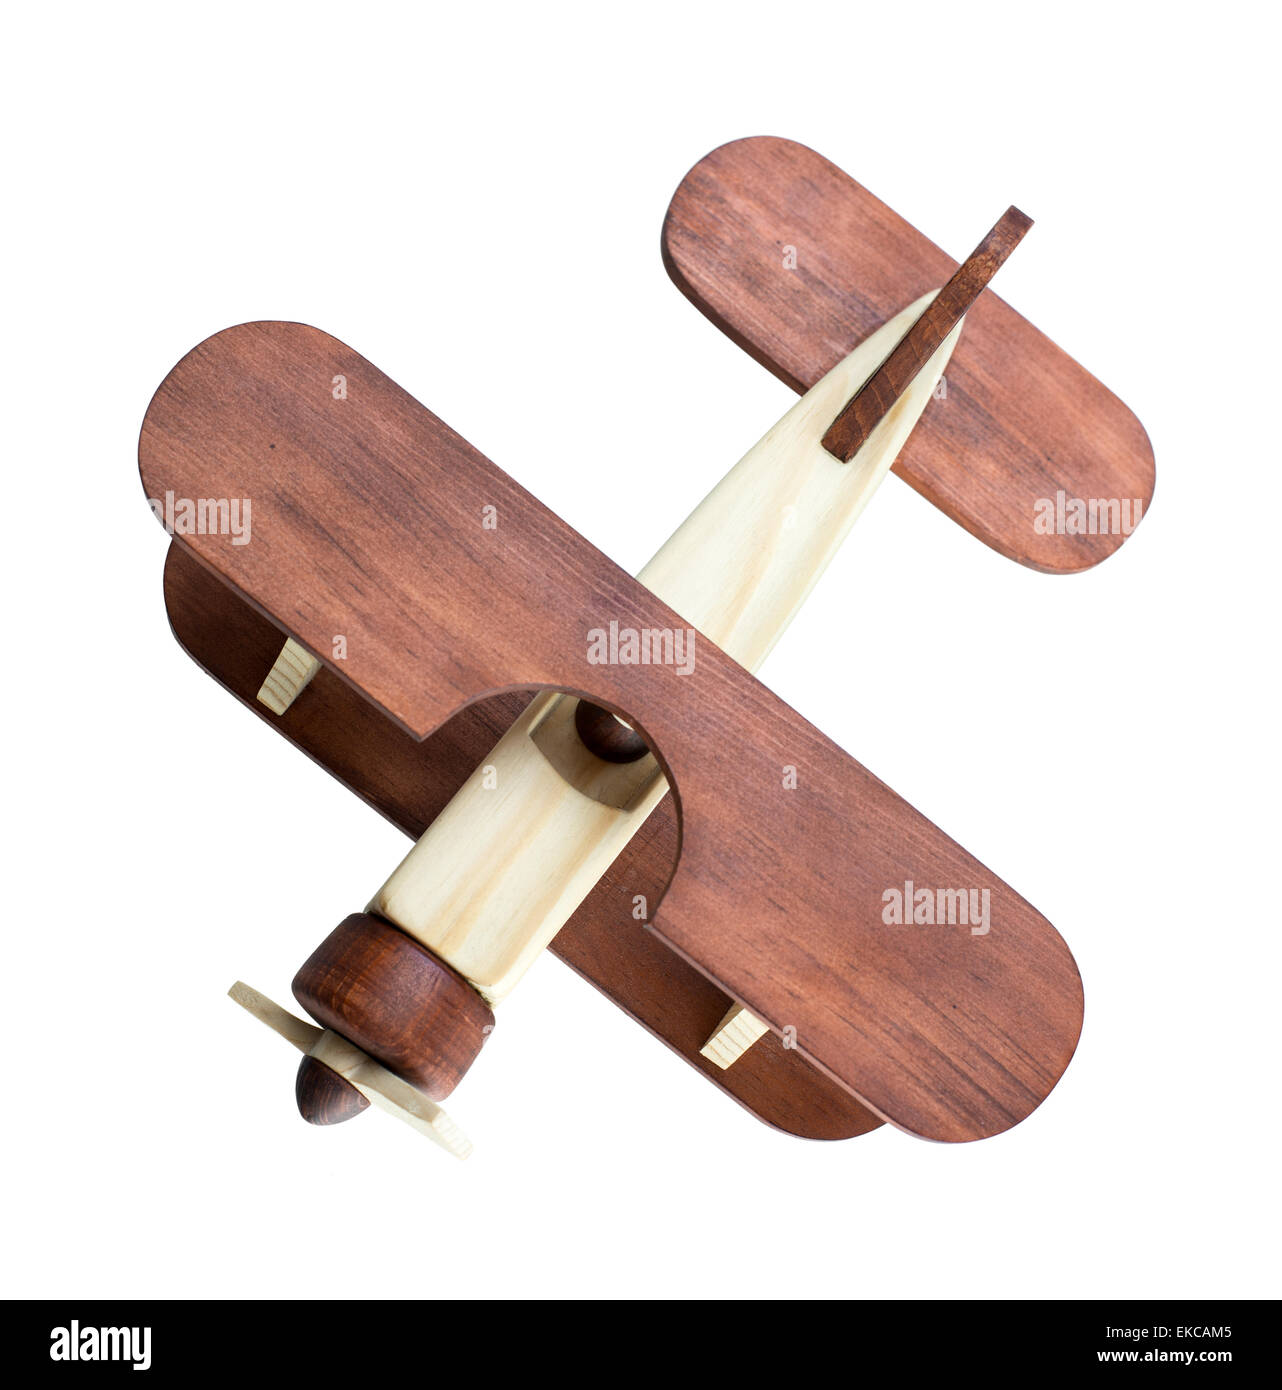 Wooden airplane model top view isolated - Stock Image